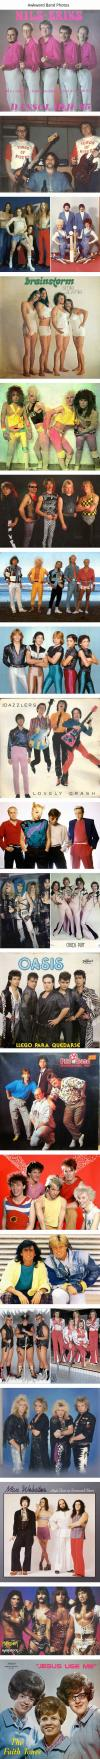 an epic collection of absolutely ridiculously awkward band photos